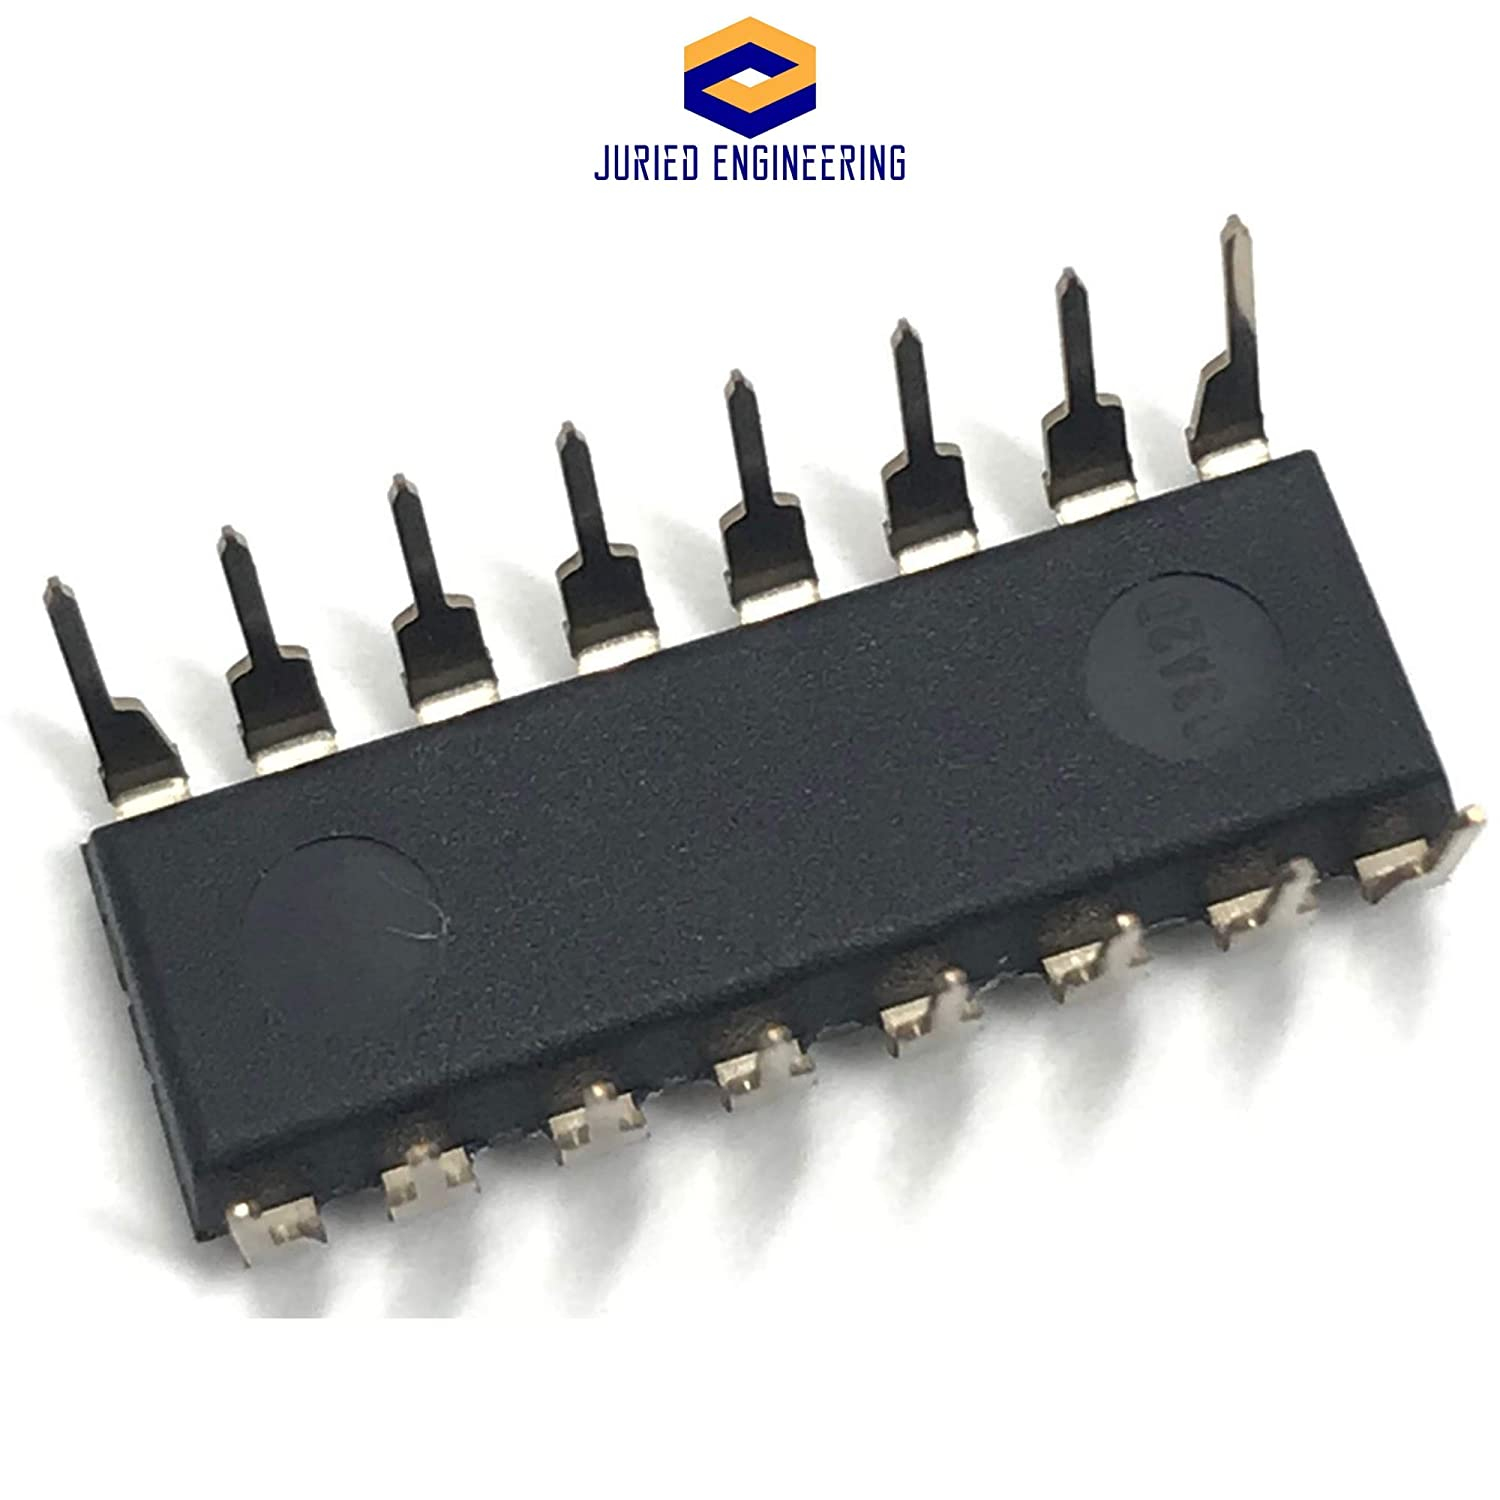 Pack of 10 Major Brands 74HC4017 ICS and Semiconductors High Speed Decade Counter//Divider